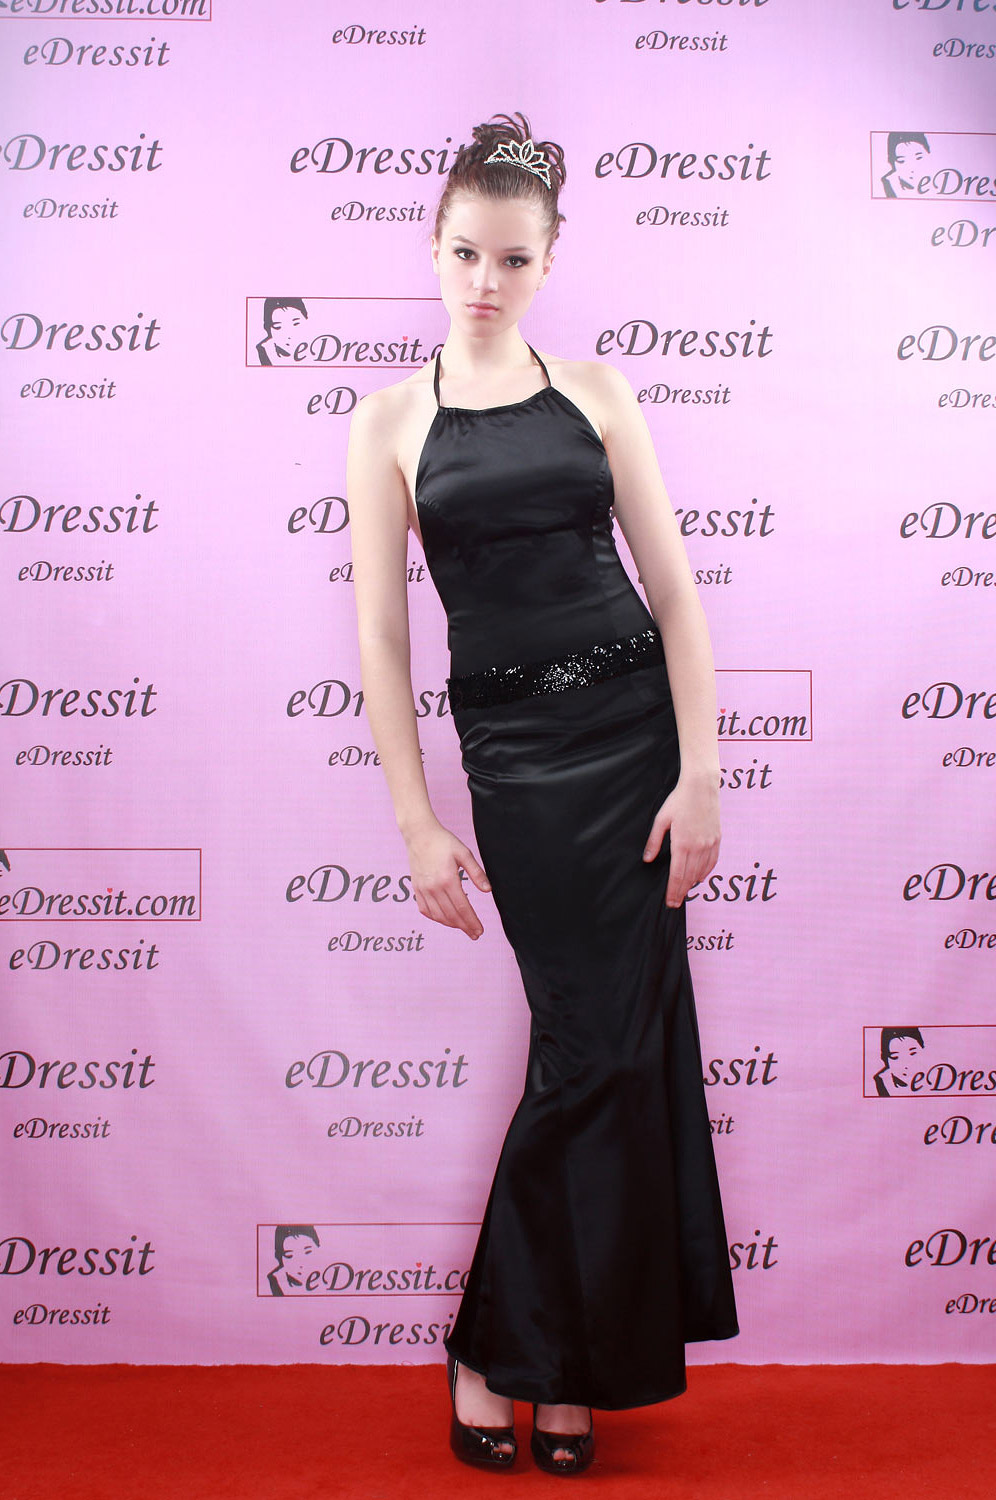 eDressit on sale black eveing dress (00050300h)